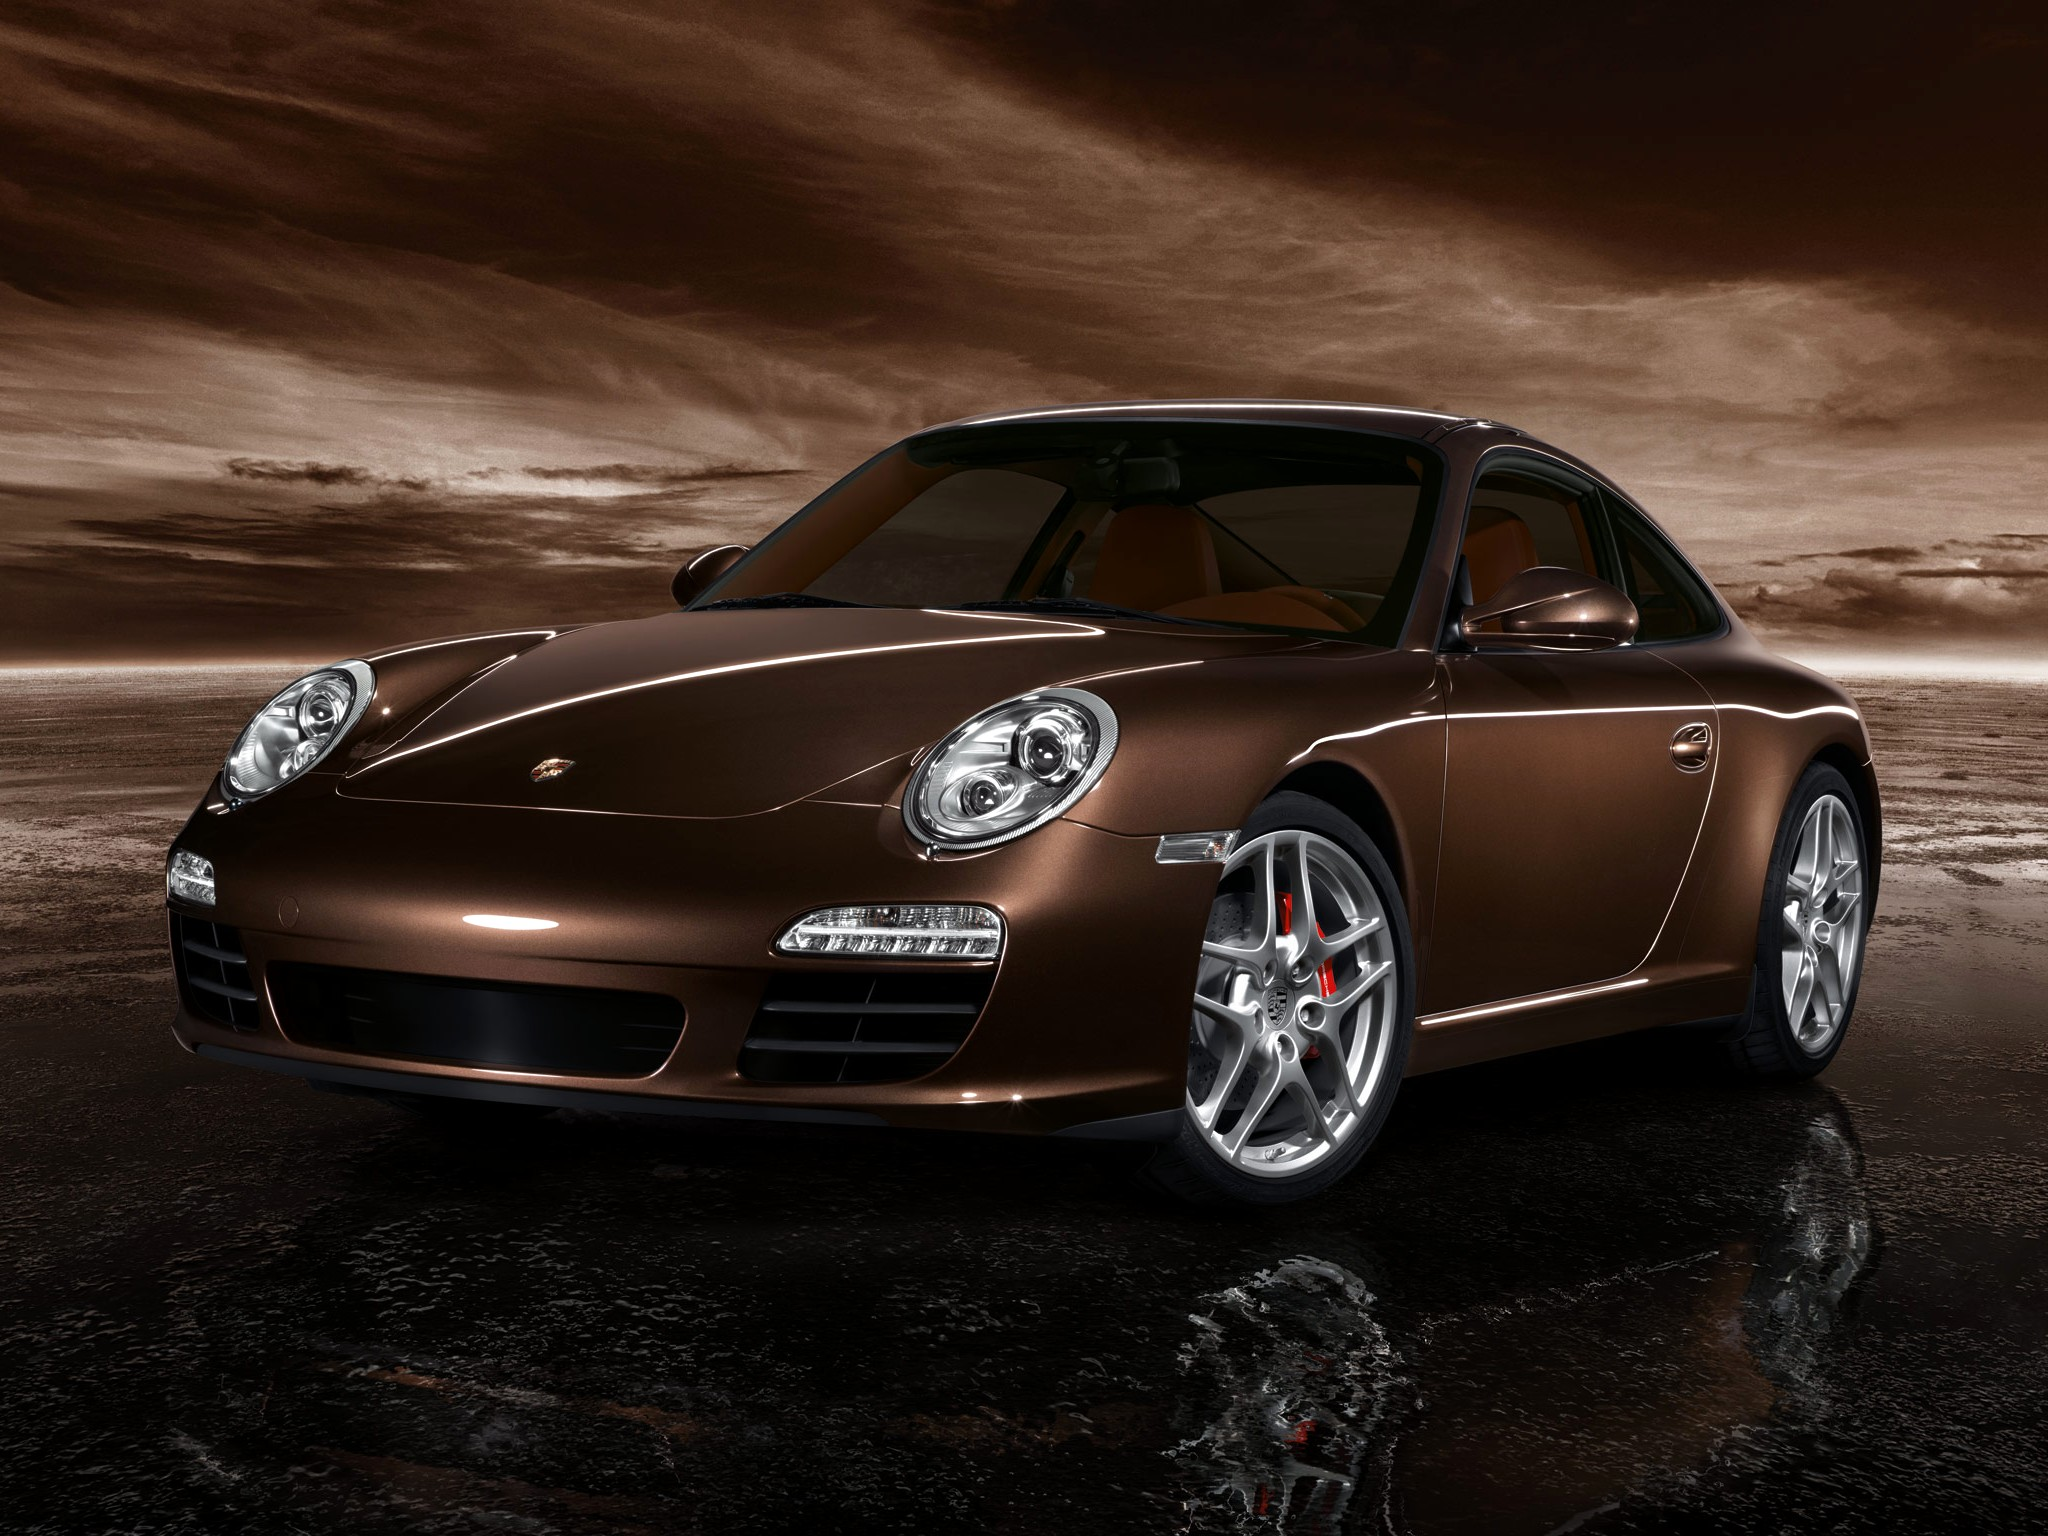 Pick Up Dodge >> PORSCHE 911 Carrera S (997) - 2008, 2009, 2010, 2011 - autoevolution